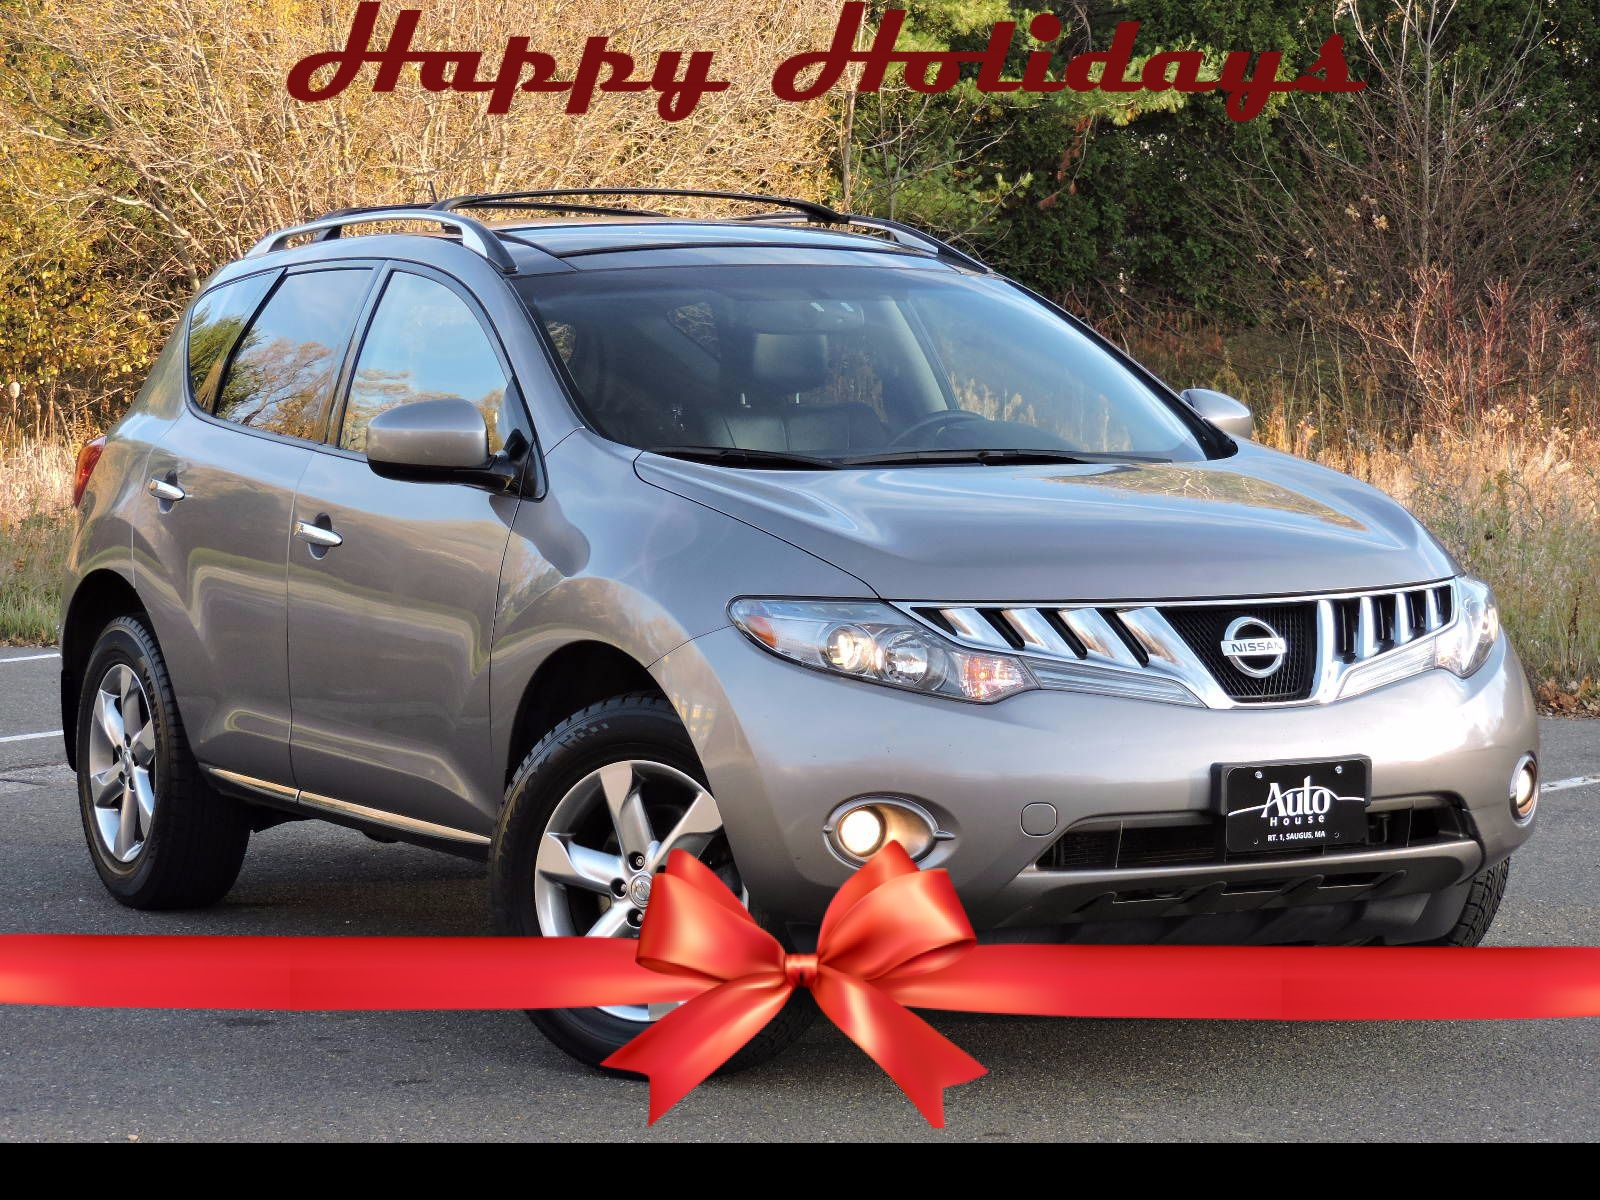 sl used platinum ma area desc nissan graphite sale for vehicleid metallic murano in details vehicle boston